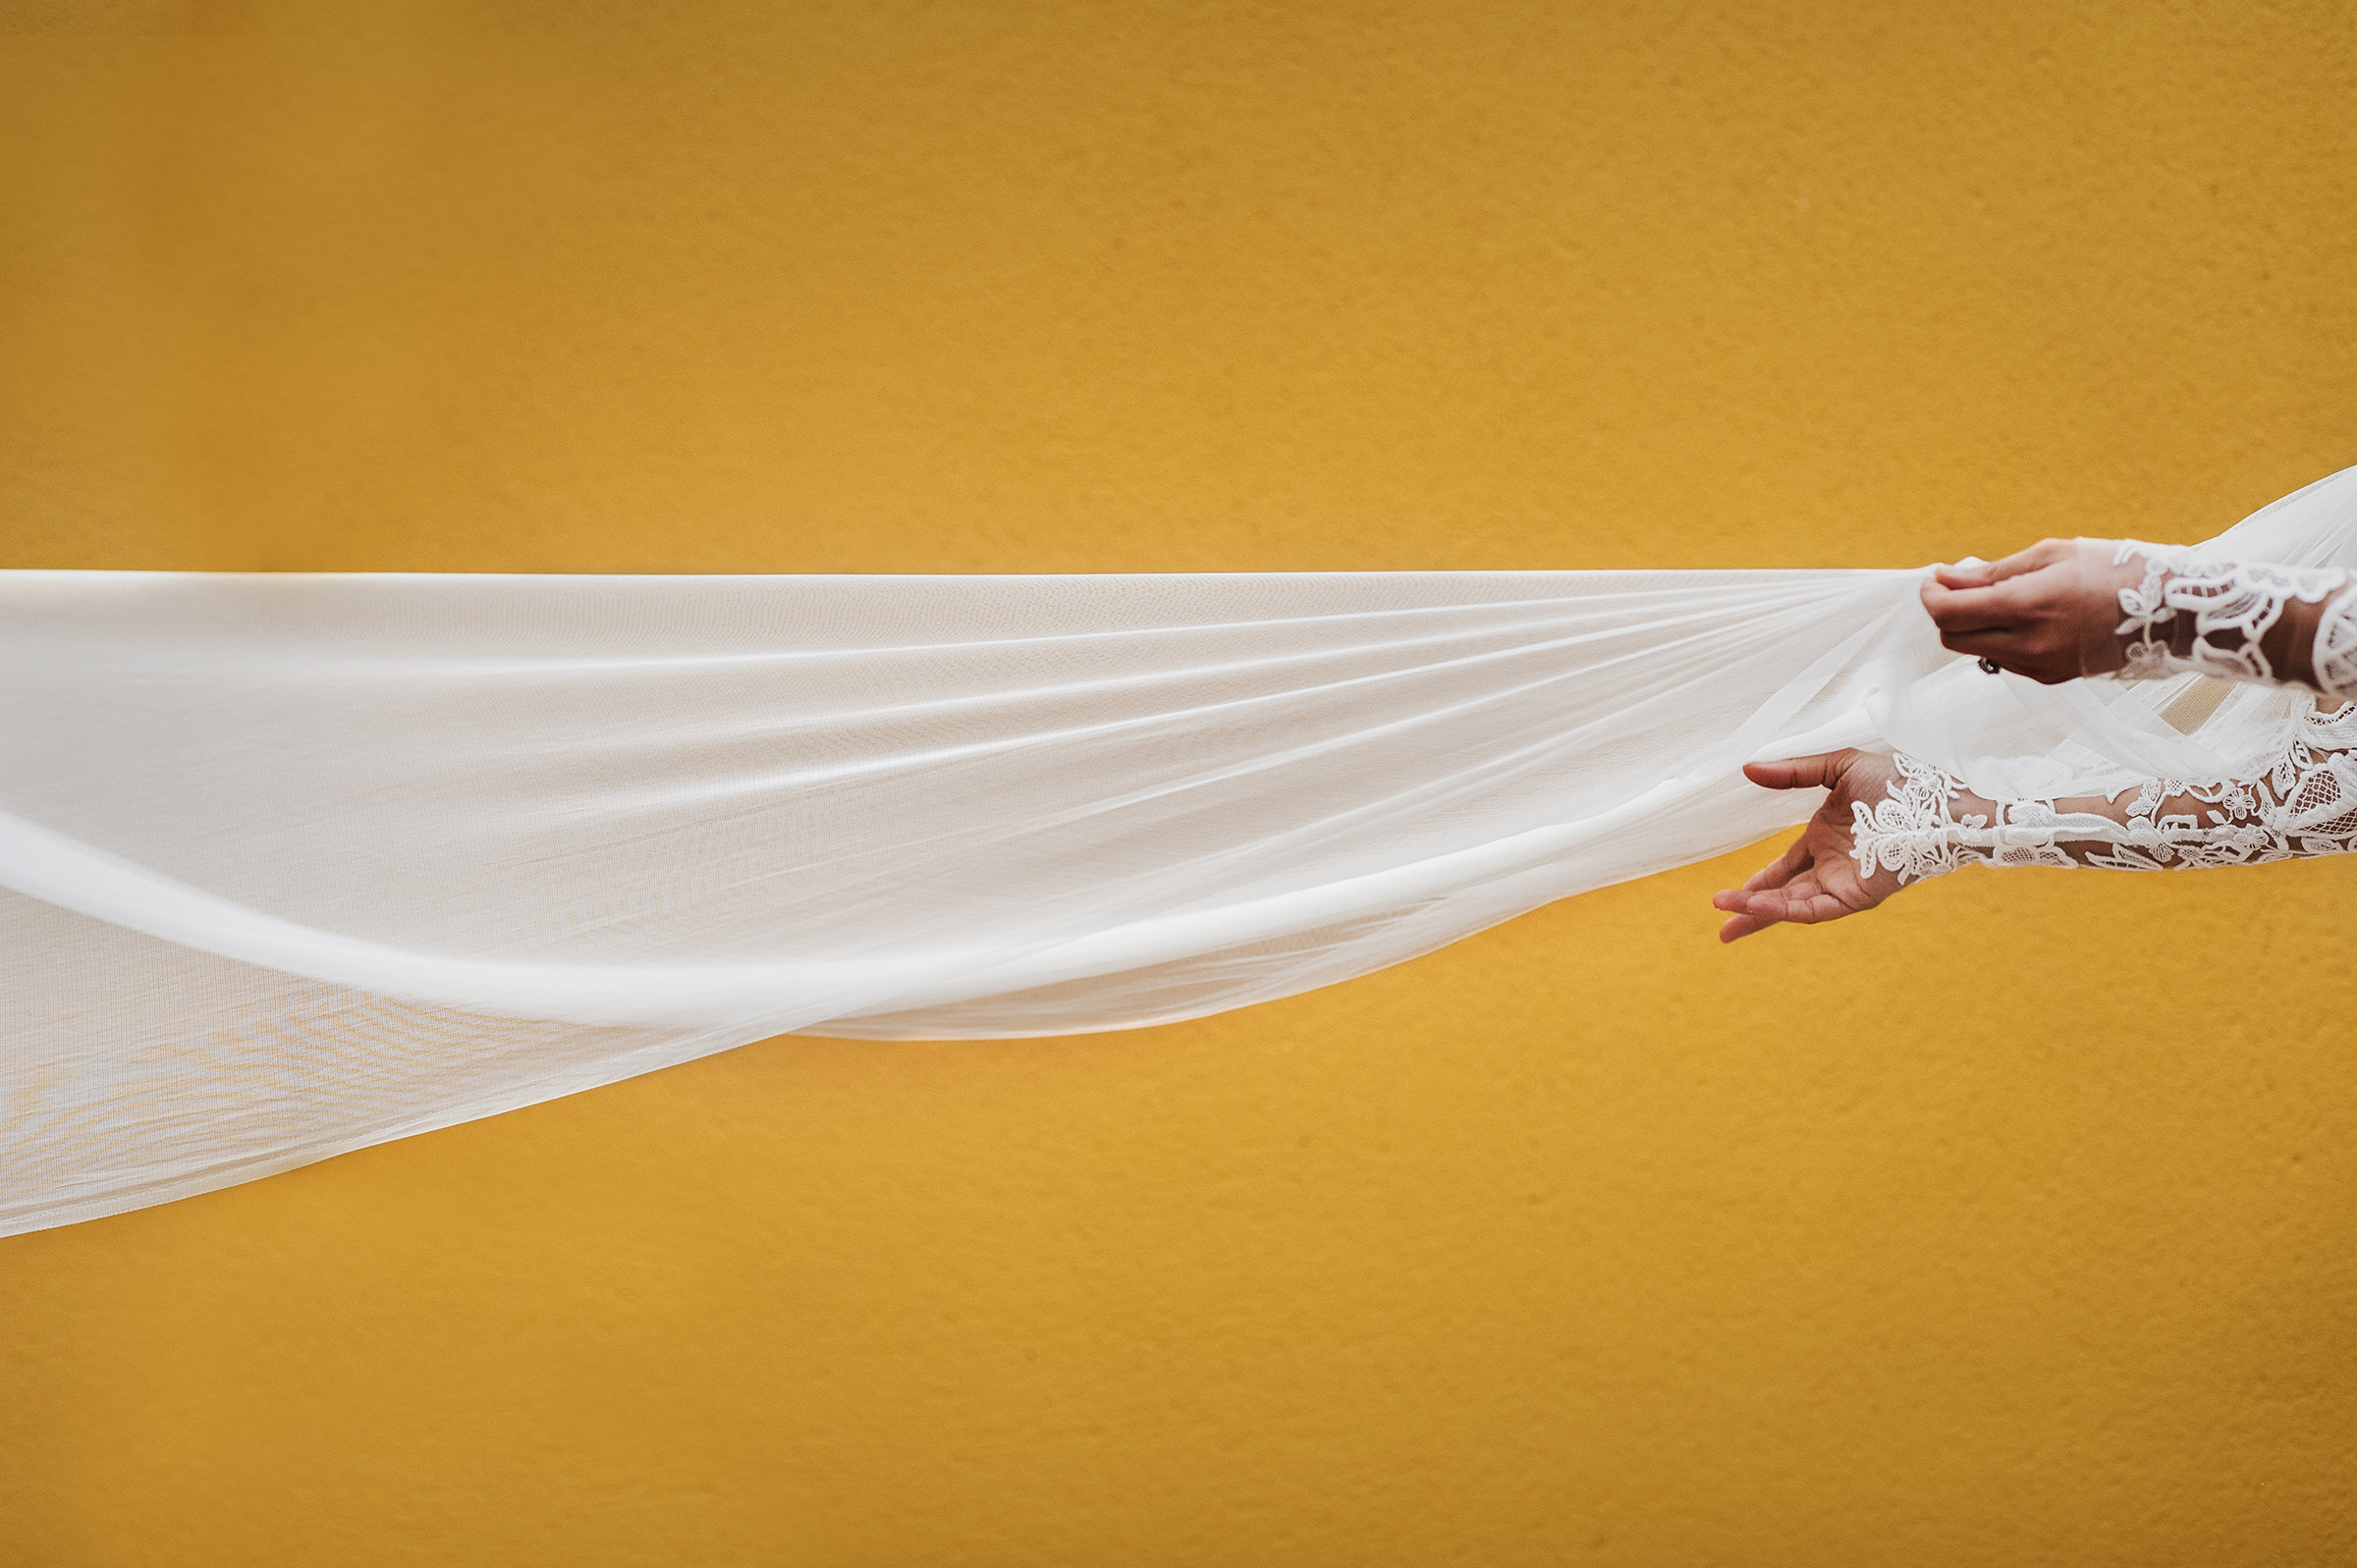 50 best wedding photo concepts- hands with veil  by Lax Photography - Spain